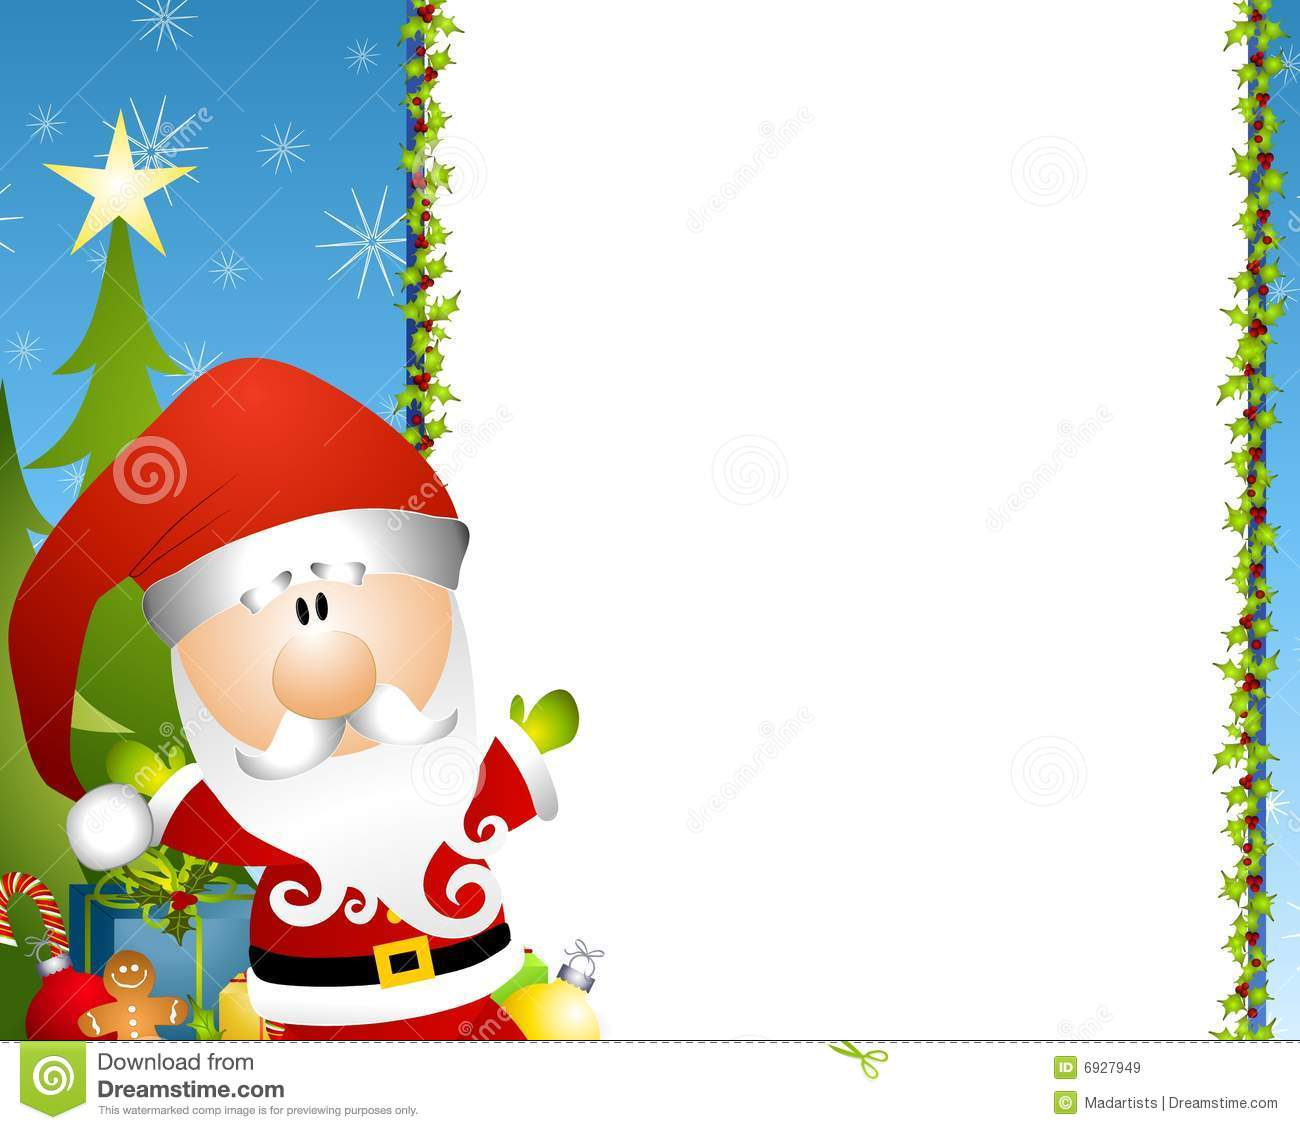 Christmas Santa and Snowman PNG Clipart | Gallery Yopriceville -  High-Quality Images and Transparent PNG Free Clipart